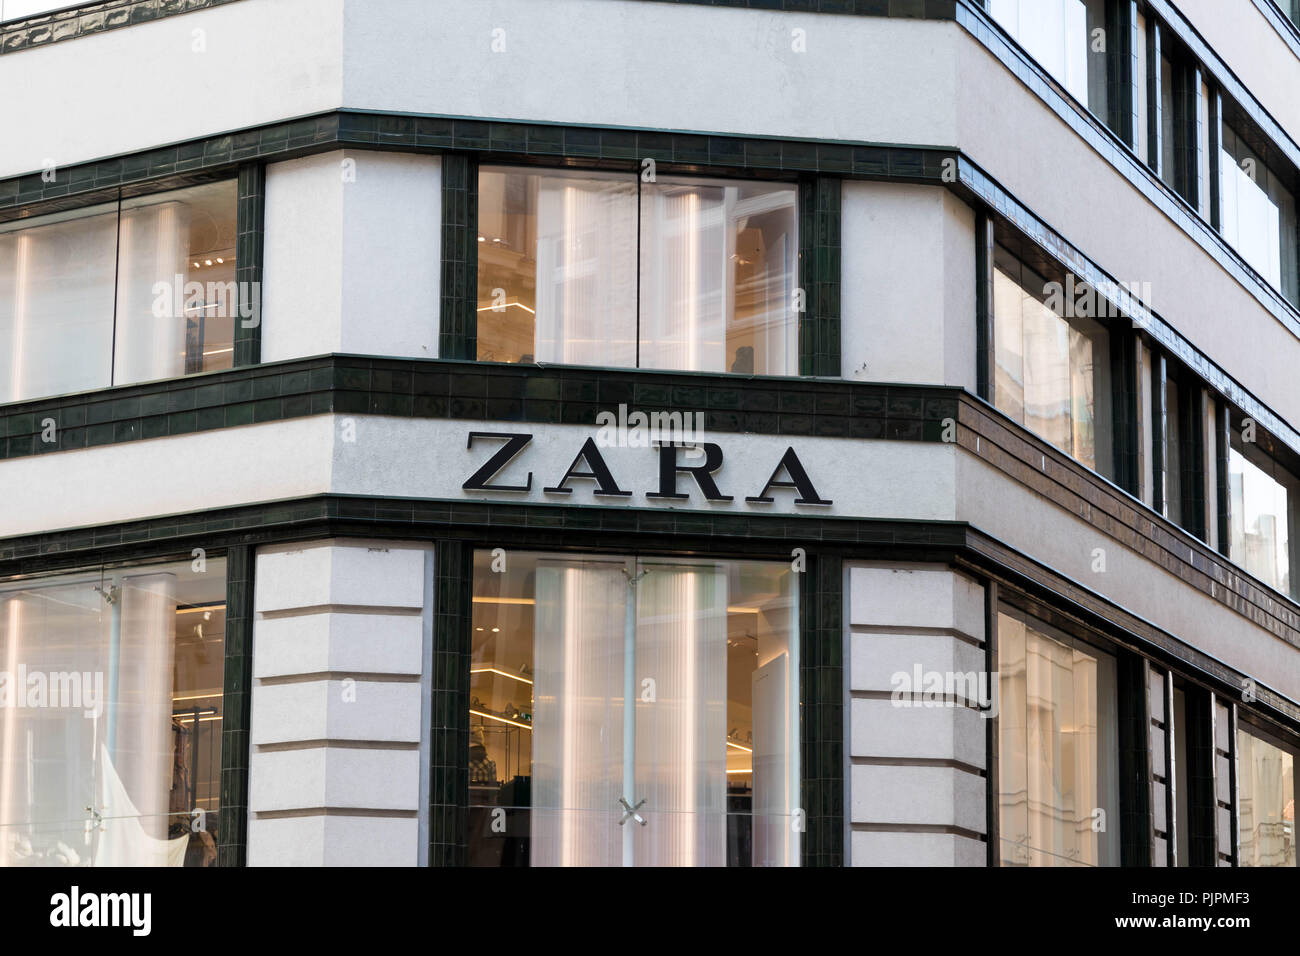 zara logo stock photos zara logo stock images alamy. Black Bedroom Furniture Sets. Home Design Ideas